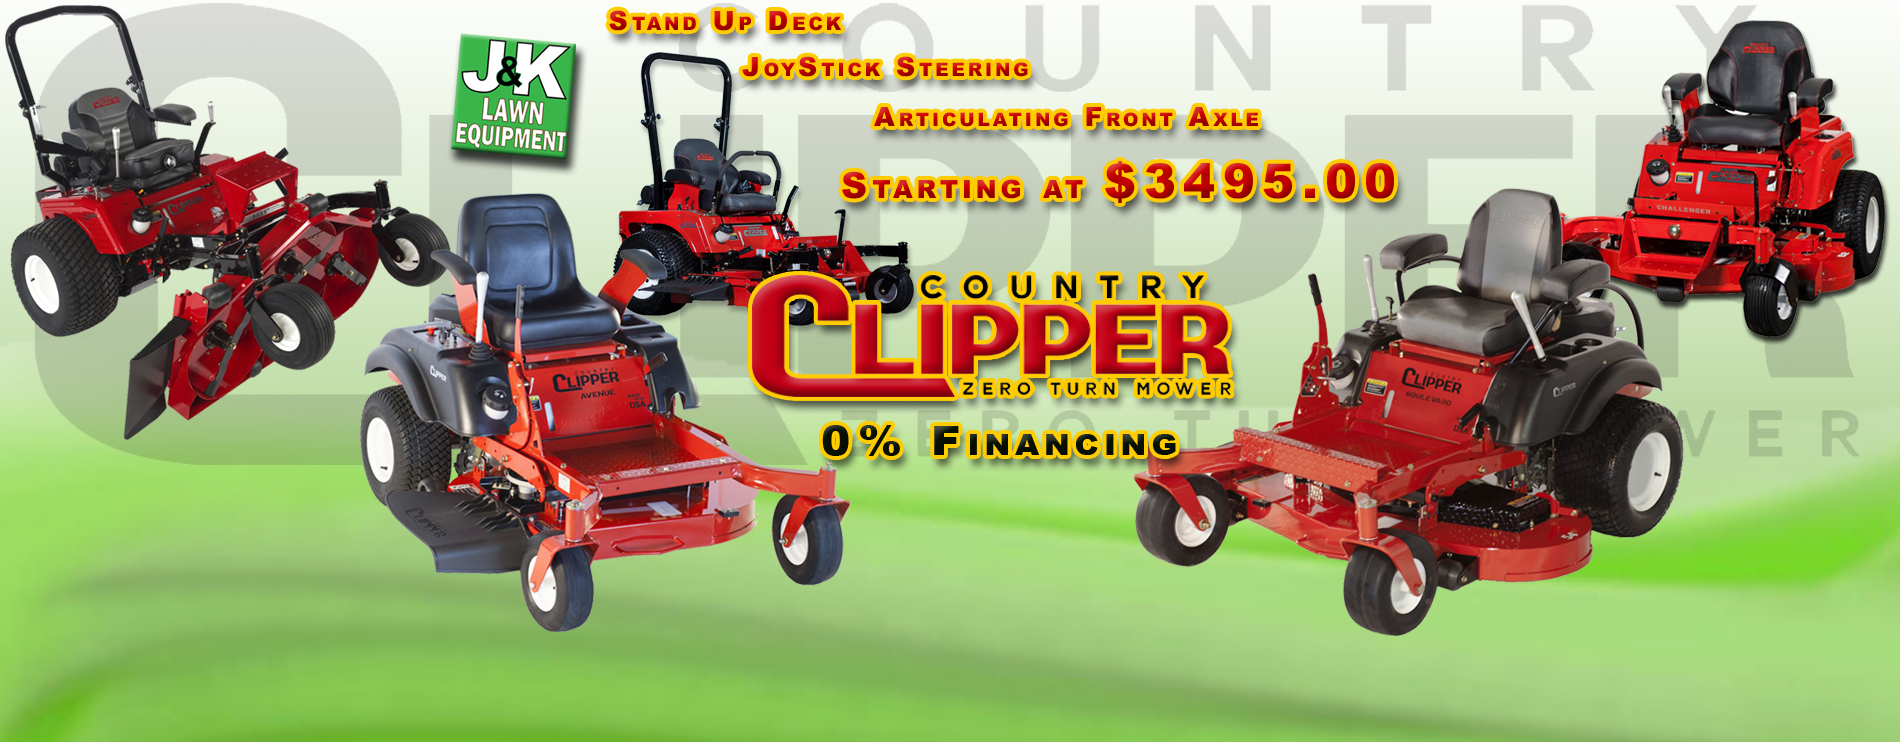 Country Clipper Zero Turn Mowers, J and K Lawn Equipment